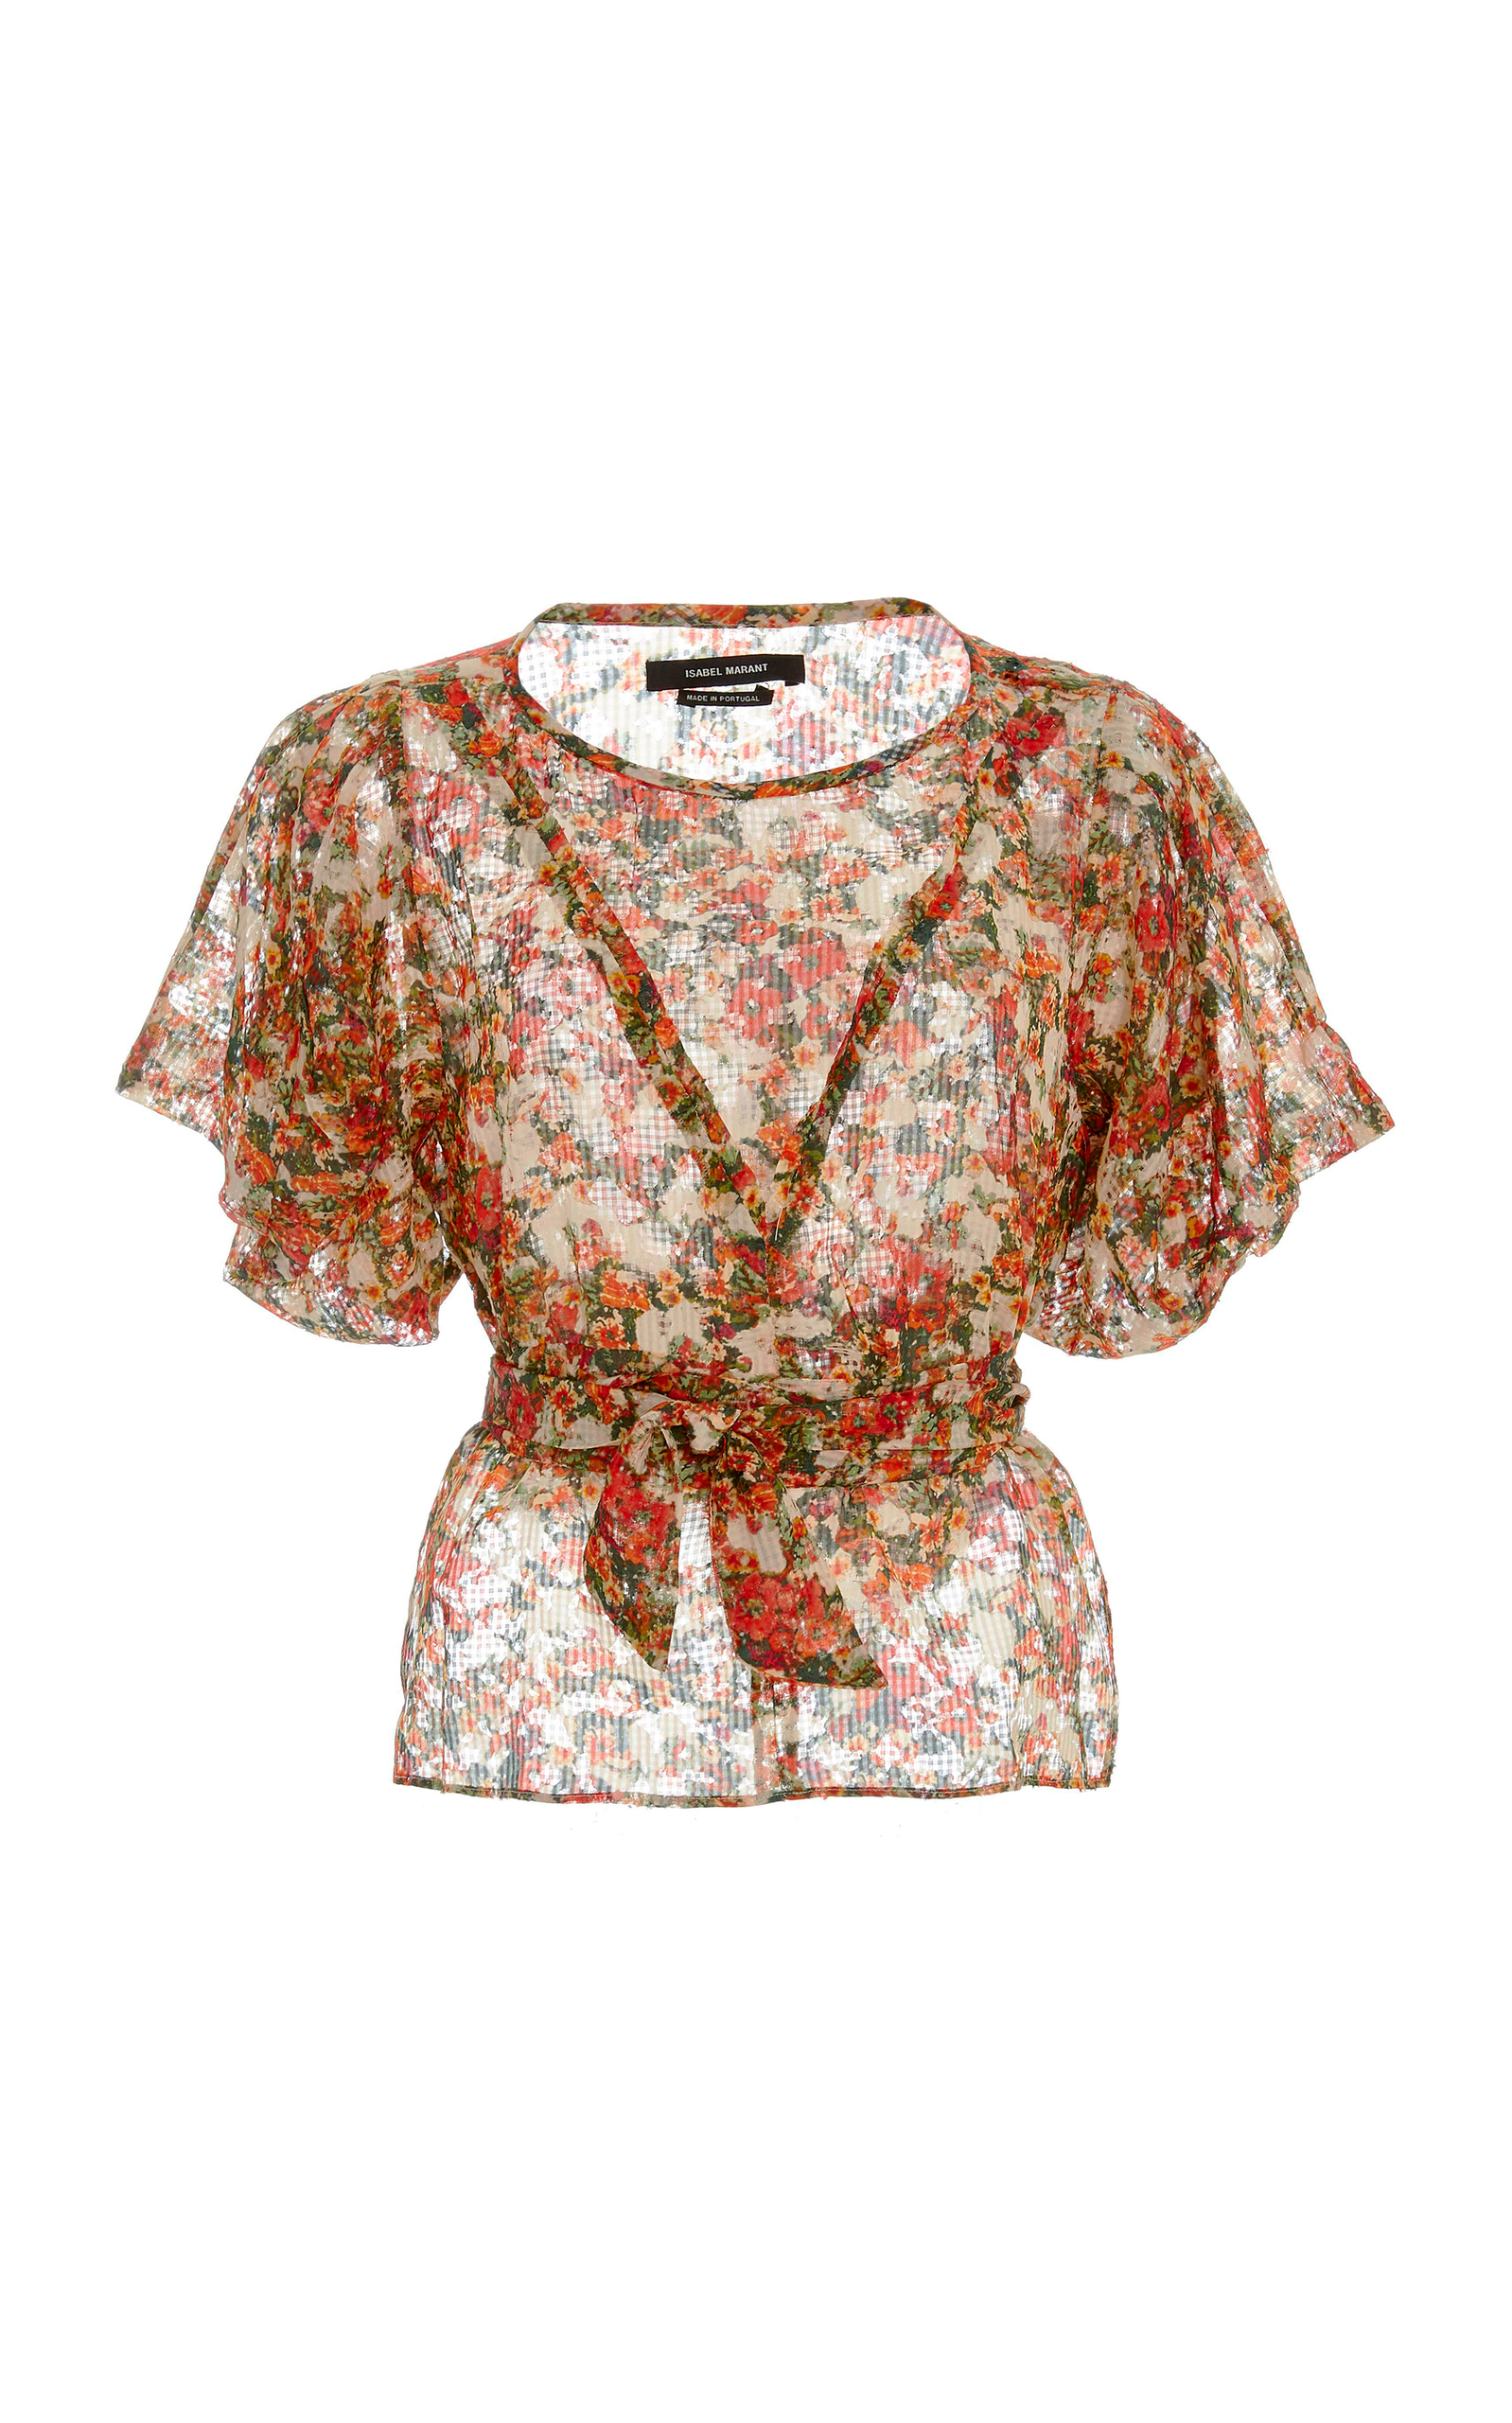 Clearance For Cheap Deals Sale Online fleming silk top Isabel Marant Ebay For Sale Discount Brand New Unisex GtCIpm9Kit